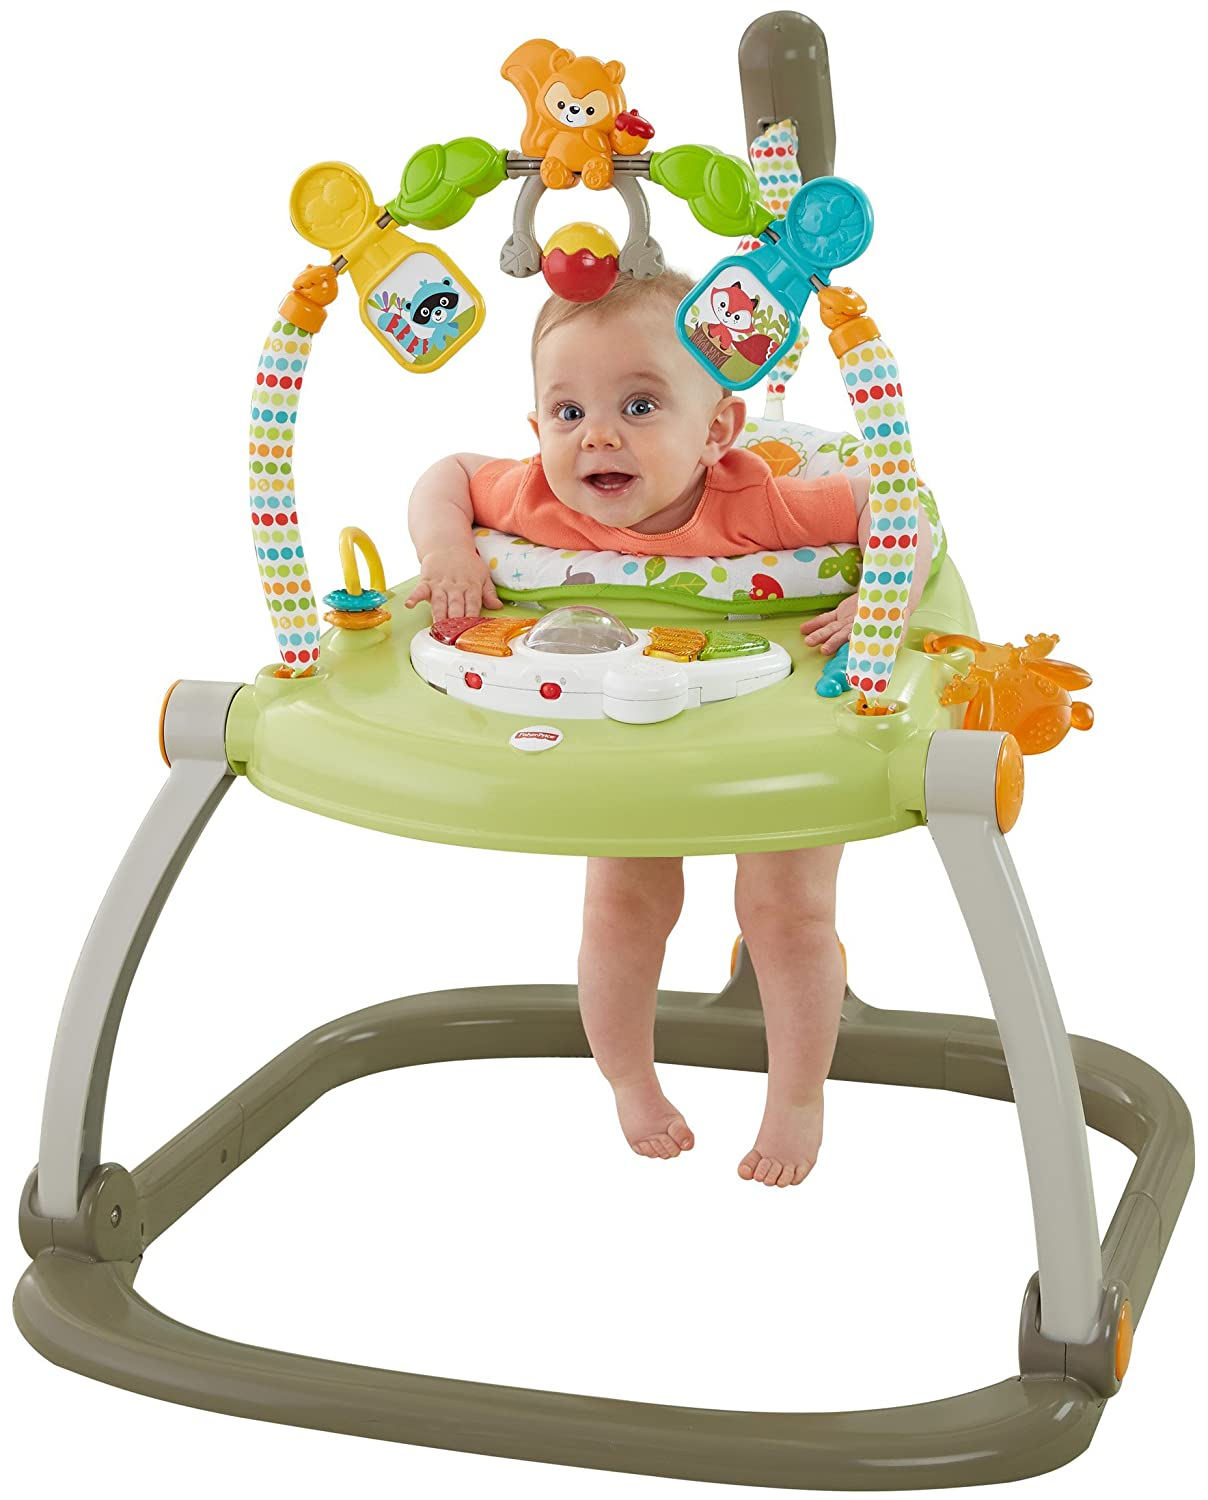 cda3684d4 Amazon.com   Fisher-Price Woodland Friends SpaceSaver Jumperoo   Baby